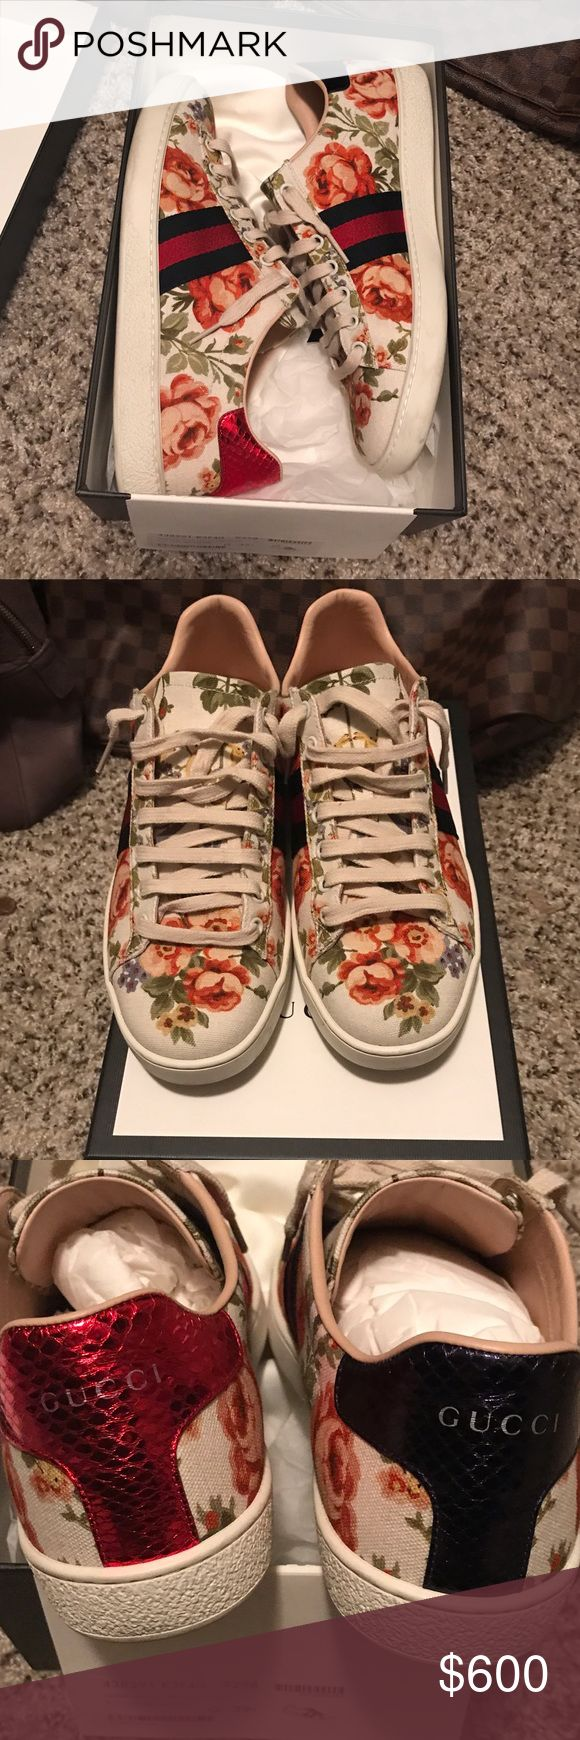 Gucci Floral Print Sneakers Cleaning out my closet, Authentic Gucci Sneakers very rare to find this pattern. I purchased theses on Net-a-porter back in Dec 2016... I've only wore them maybe 5-6 times. Offers only, NO TRADES pls! Size is IT39.5 fits a US 9.5 any others questions just ask :) Gucci Shoes Sneakers